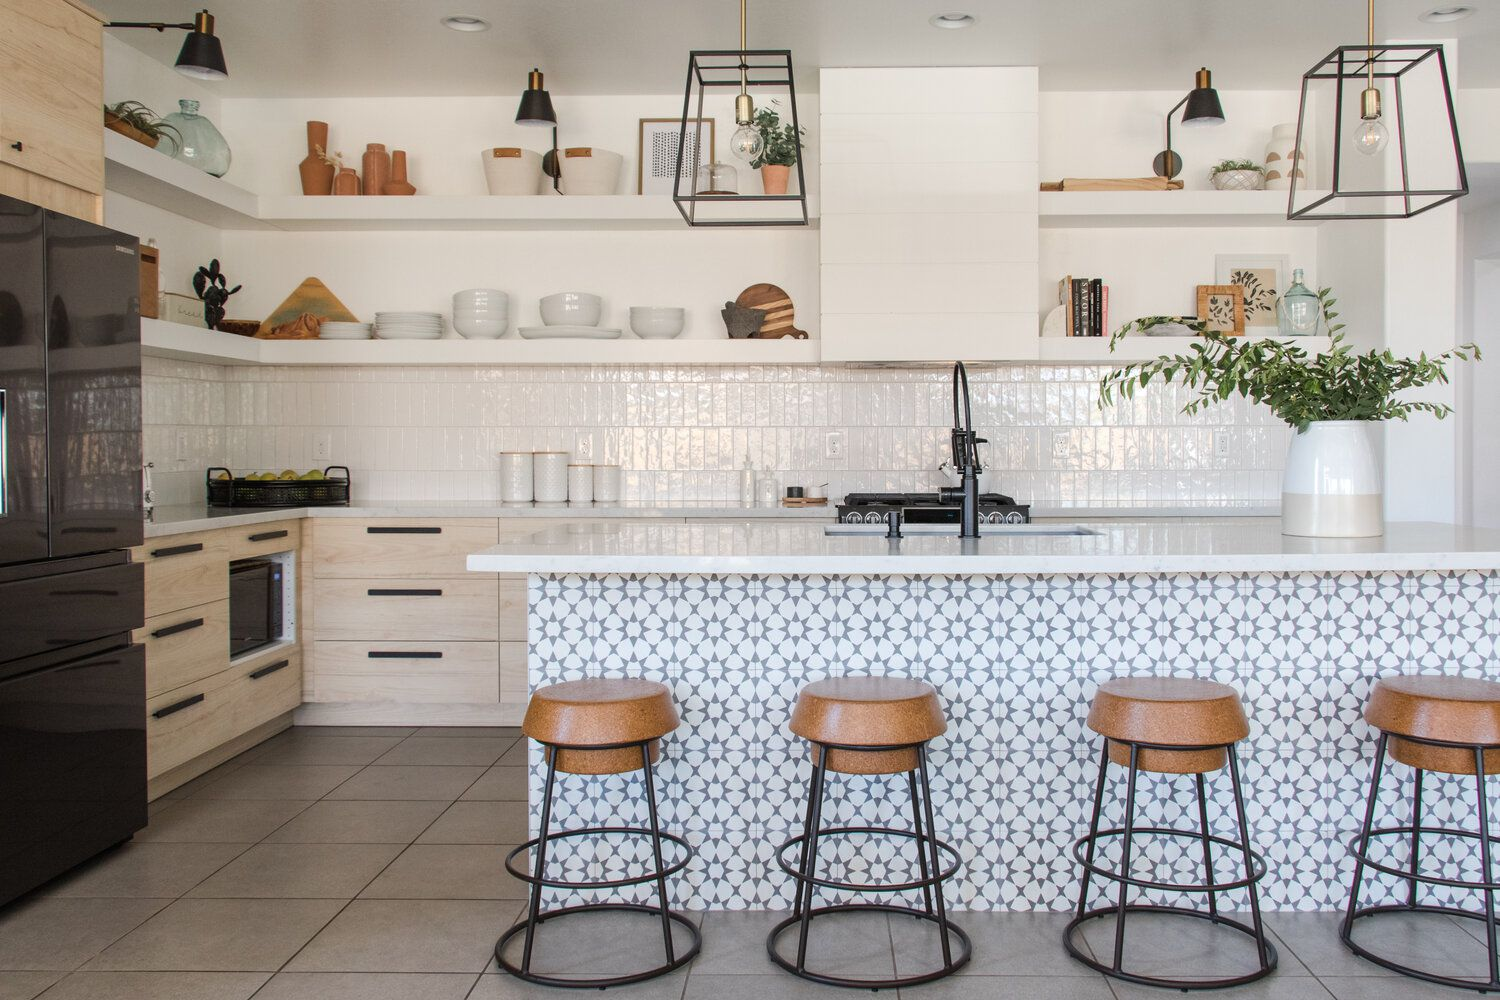 10 Unexpected Ways to Use Tile to Freshen Up Your Interiors